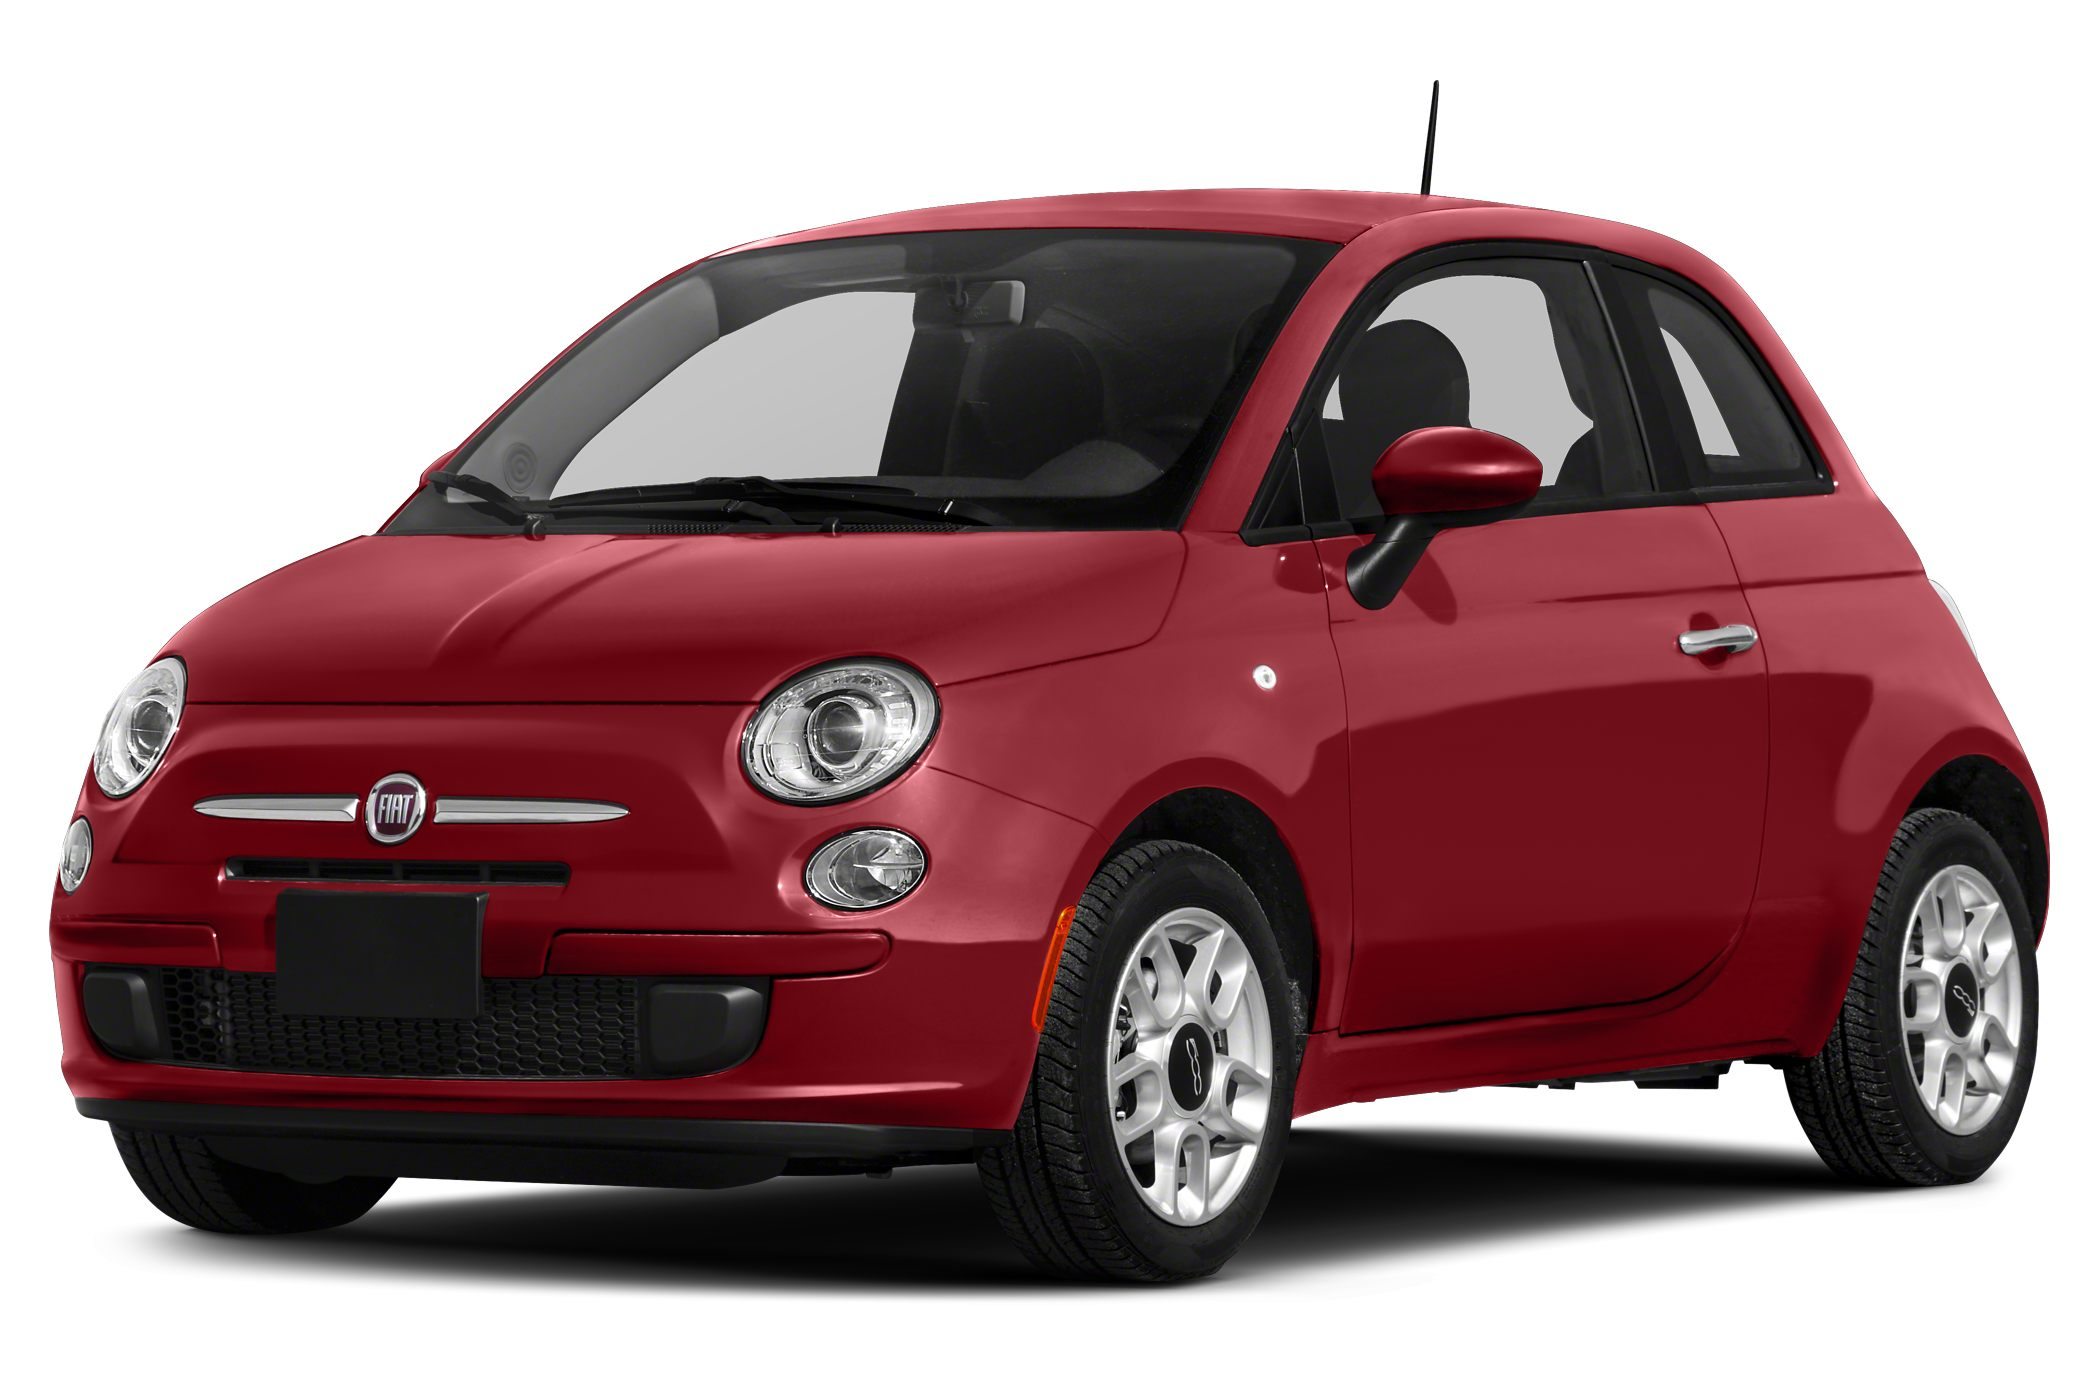 2014 Fiat 500 Information Spare Tire Location